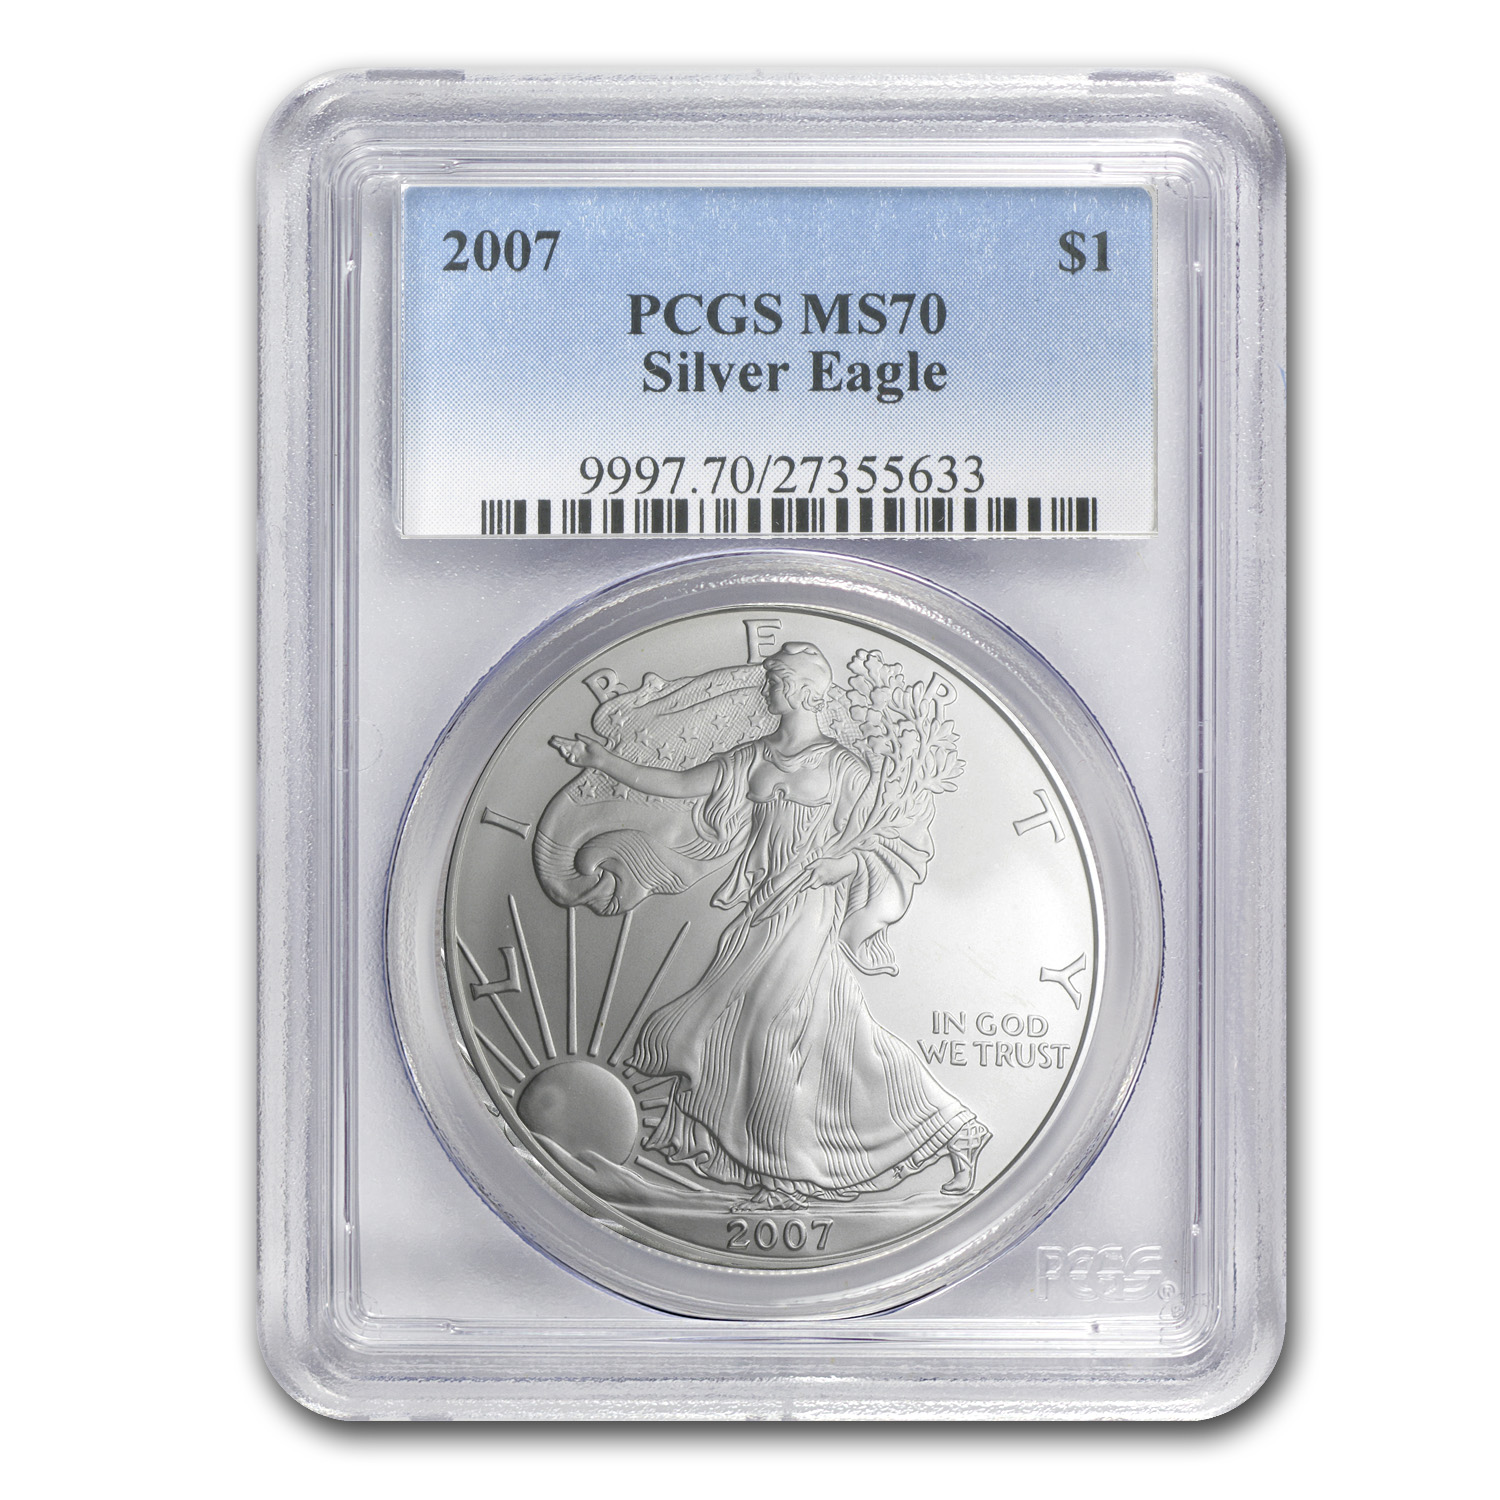 2007 Silver American Eagle - MS-70 PCGS - Registry Set Coin